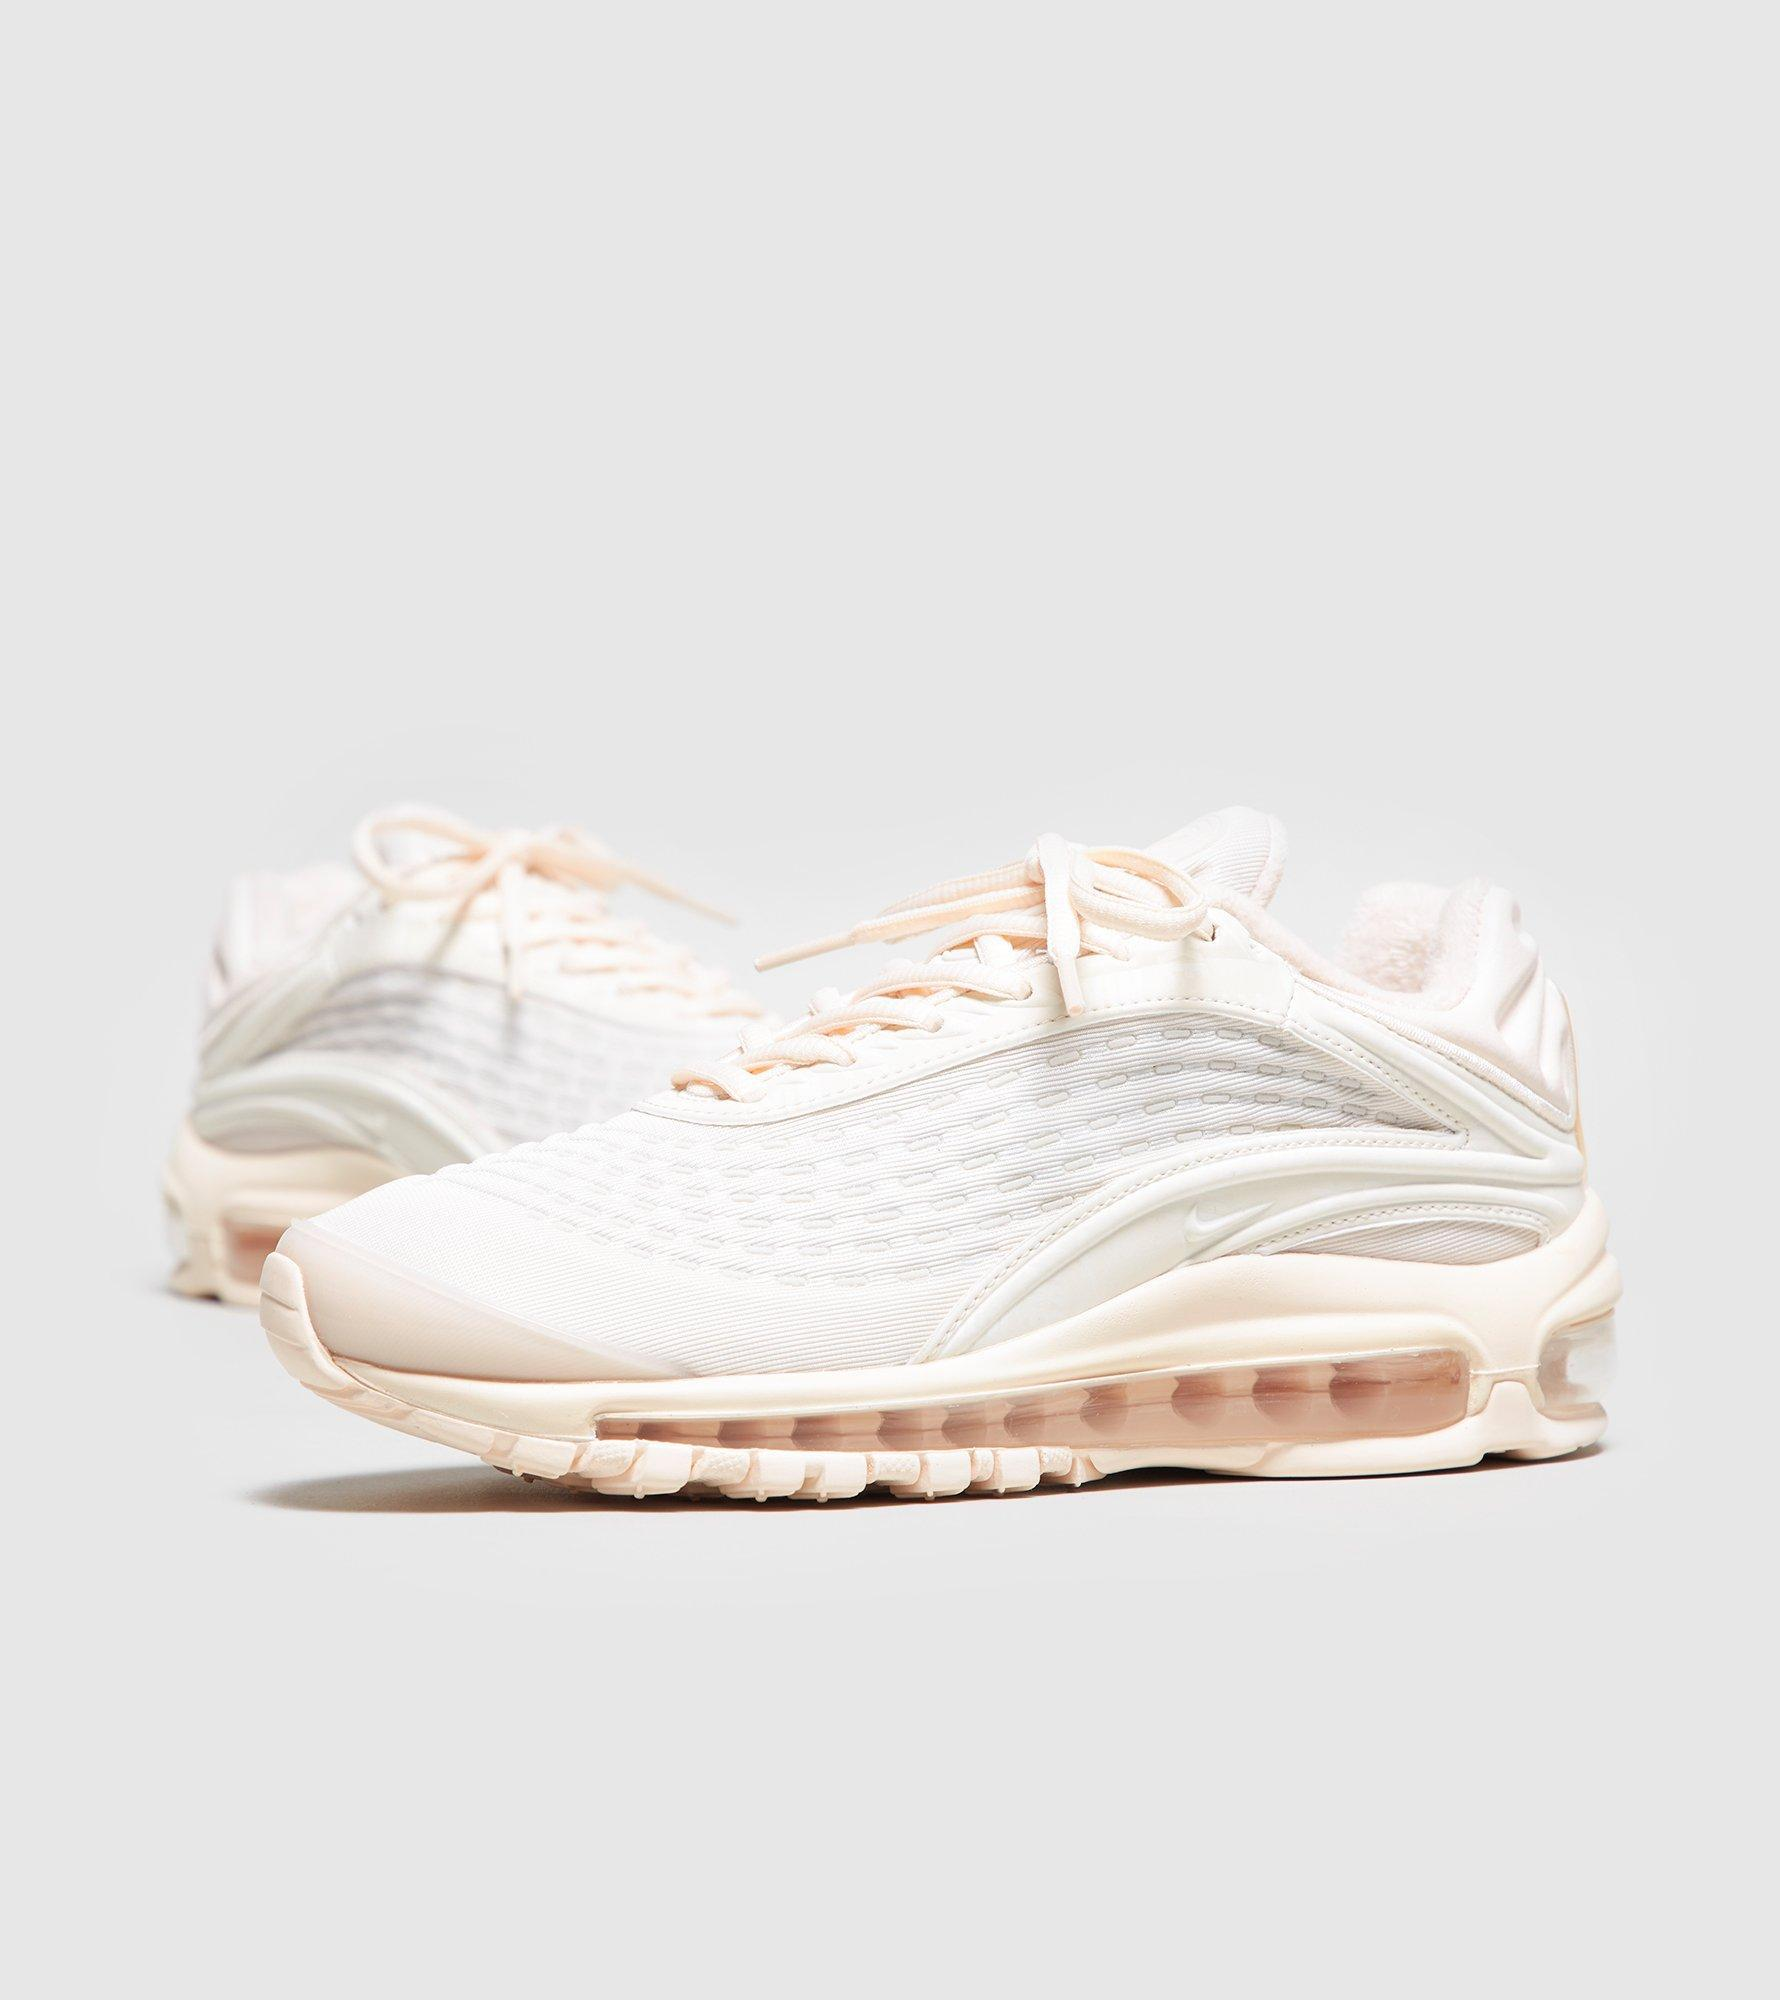 Nike WMNS Air Max Deluxe SE (White)